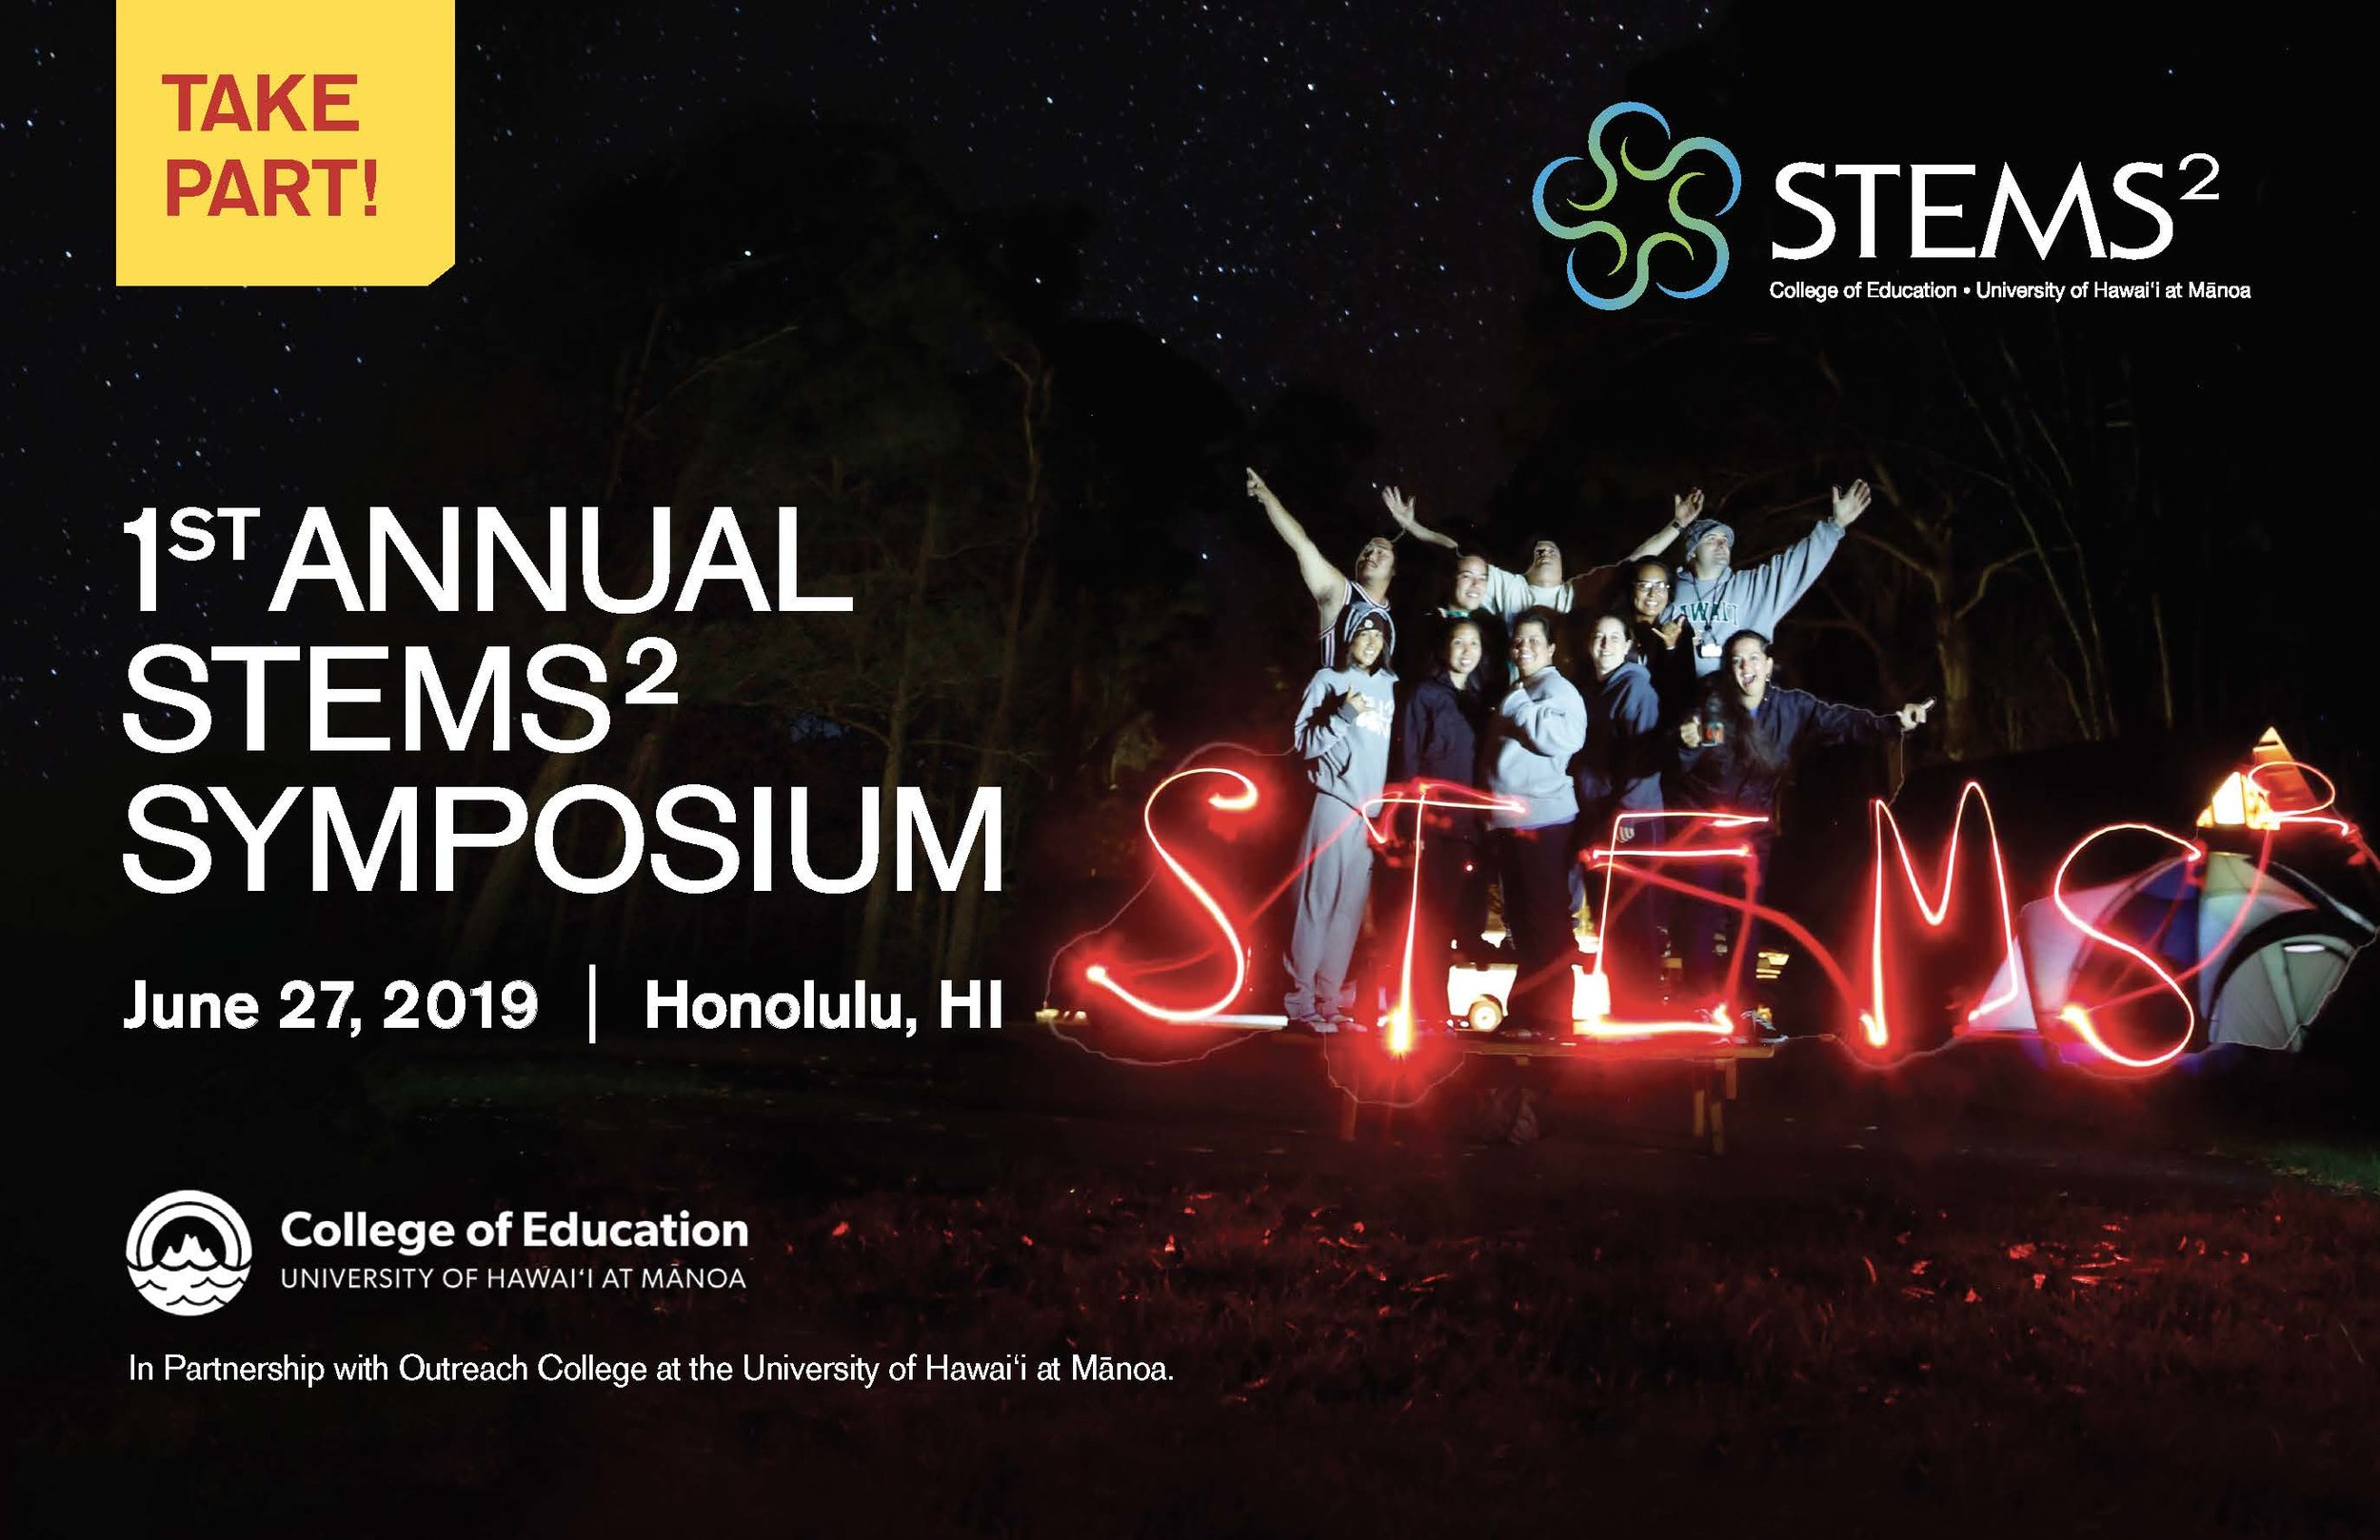 TakePart - STEMS2Symposium2019.jpg